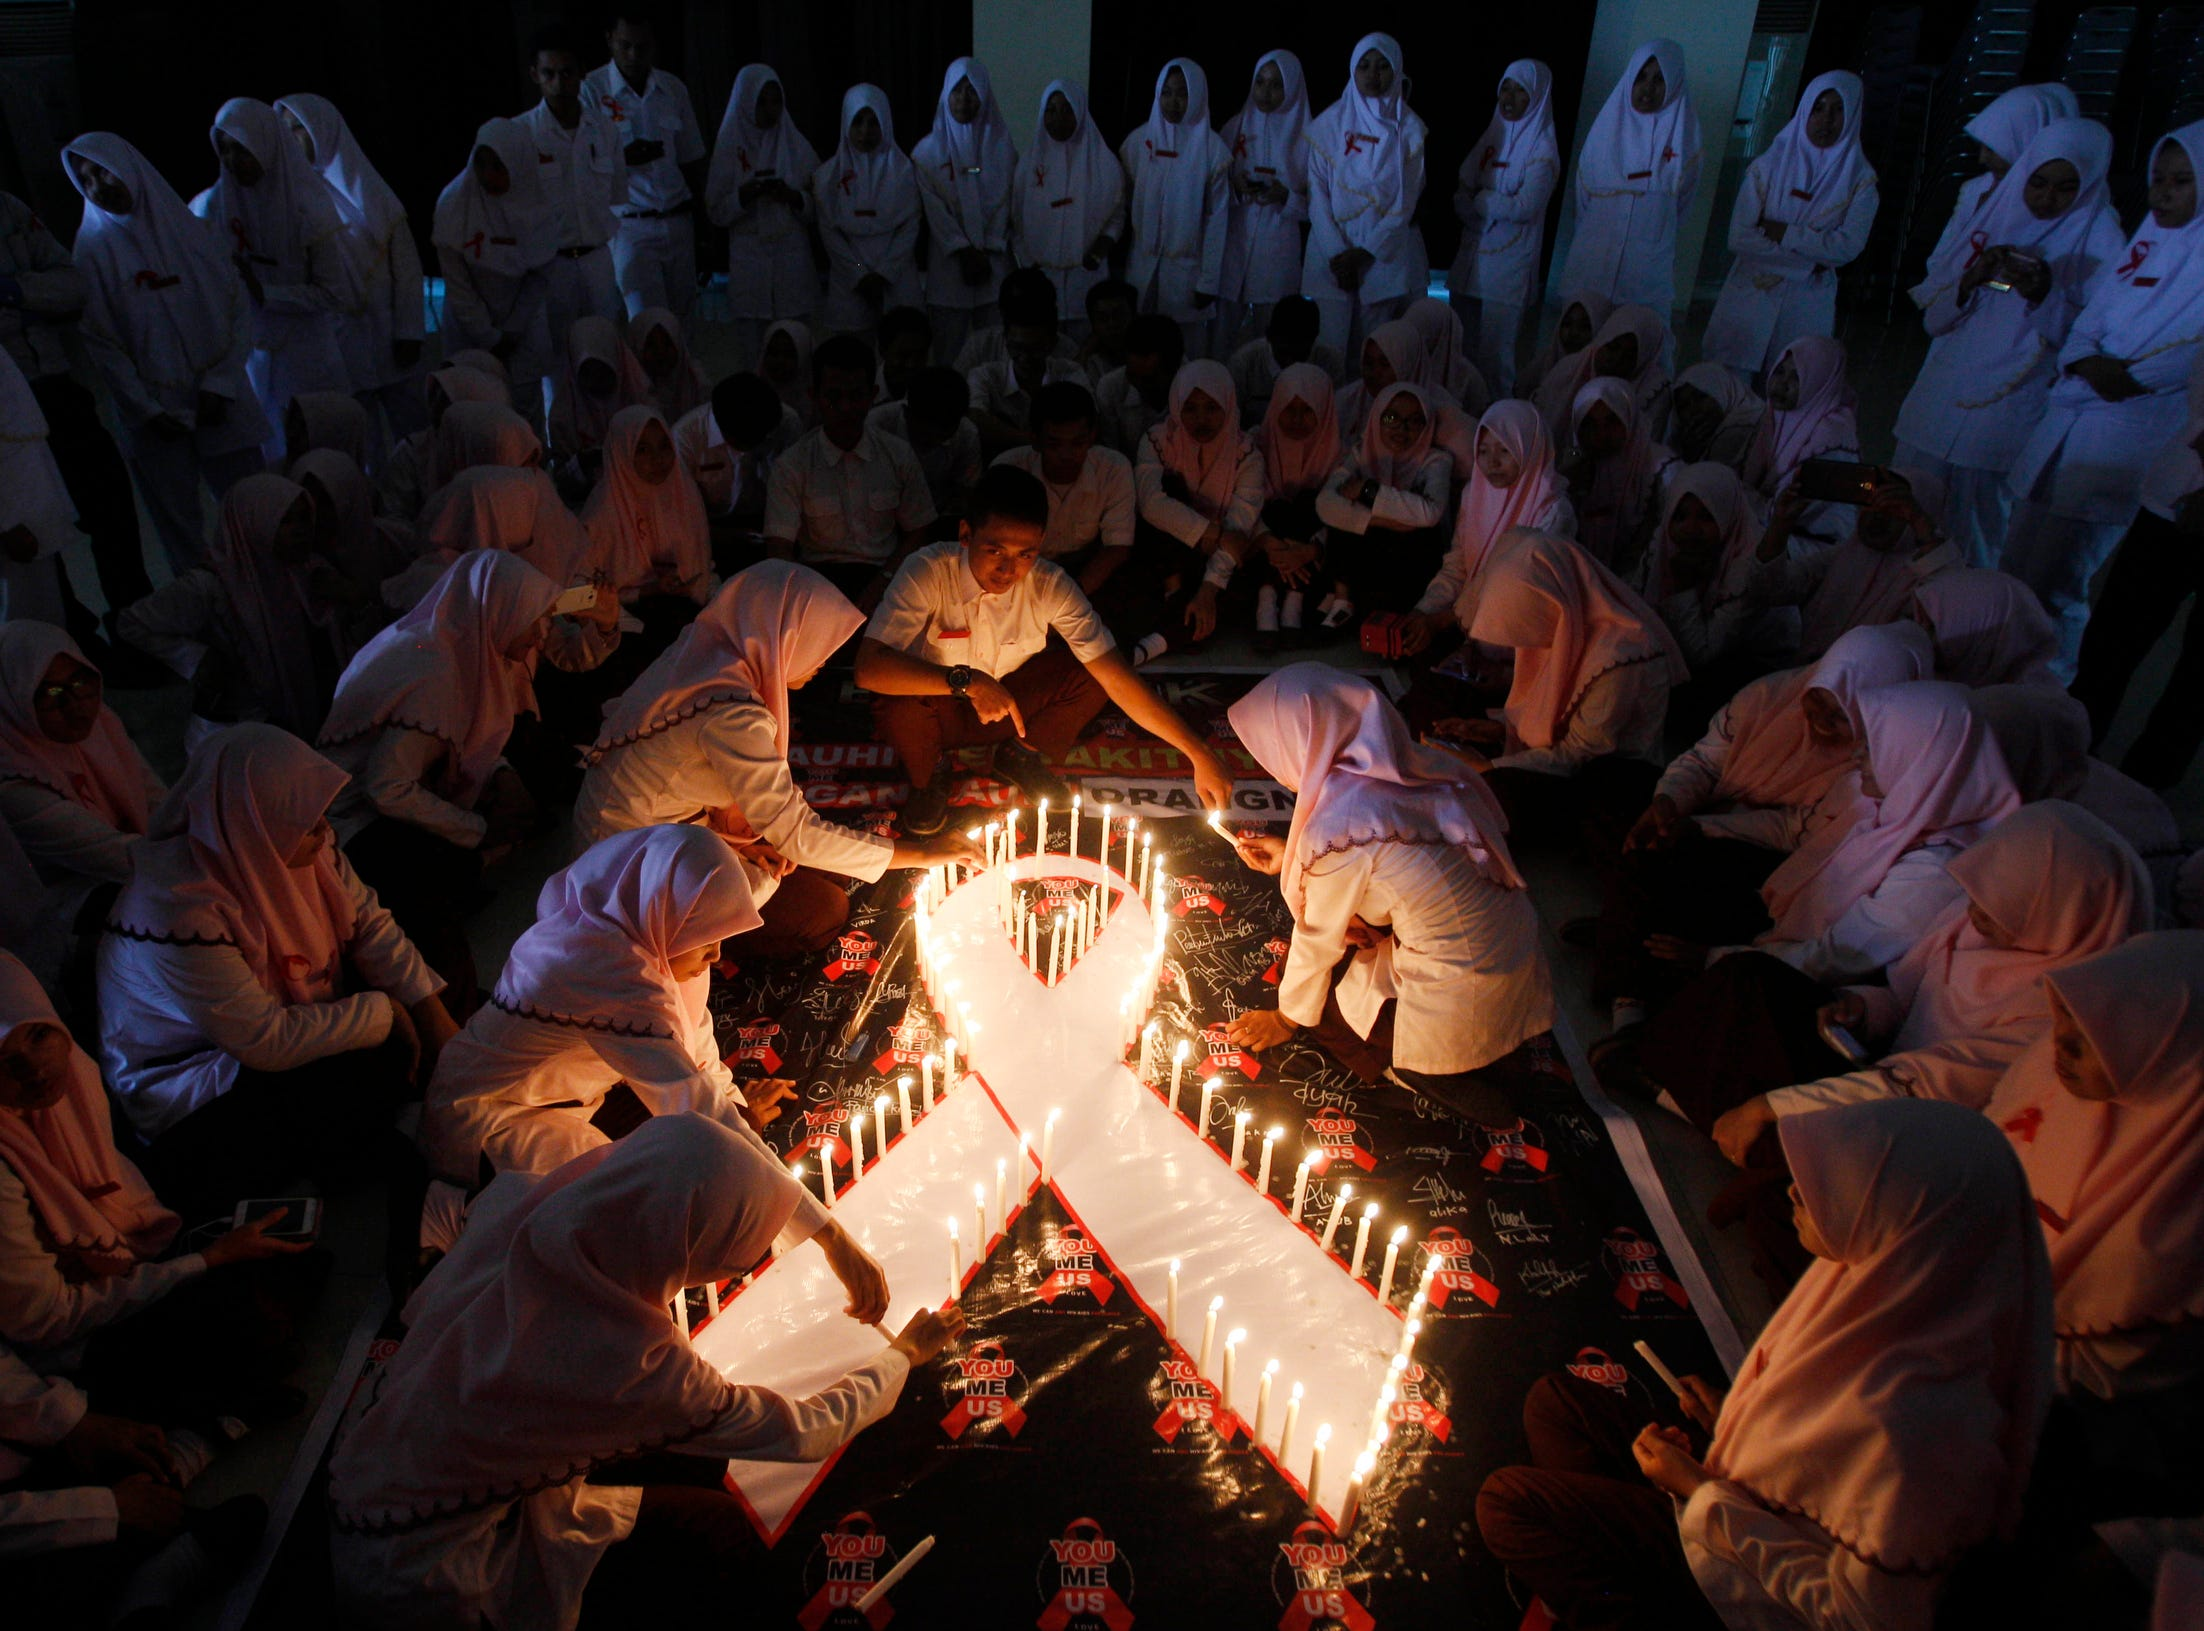 Indonesian medical students light candles during a vigil commemorating World AIDS day in Surabaya, East Java, Indonesia,  2015.